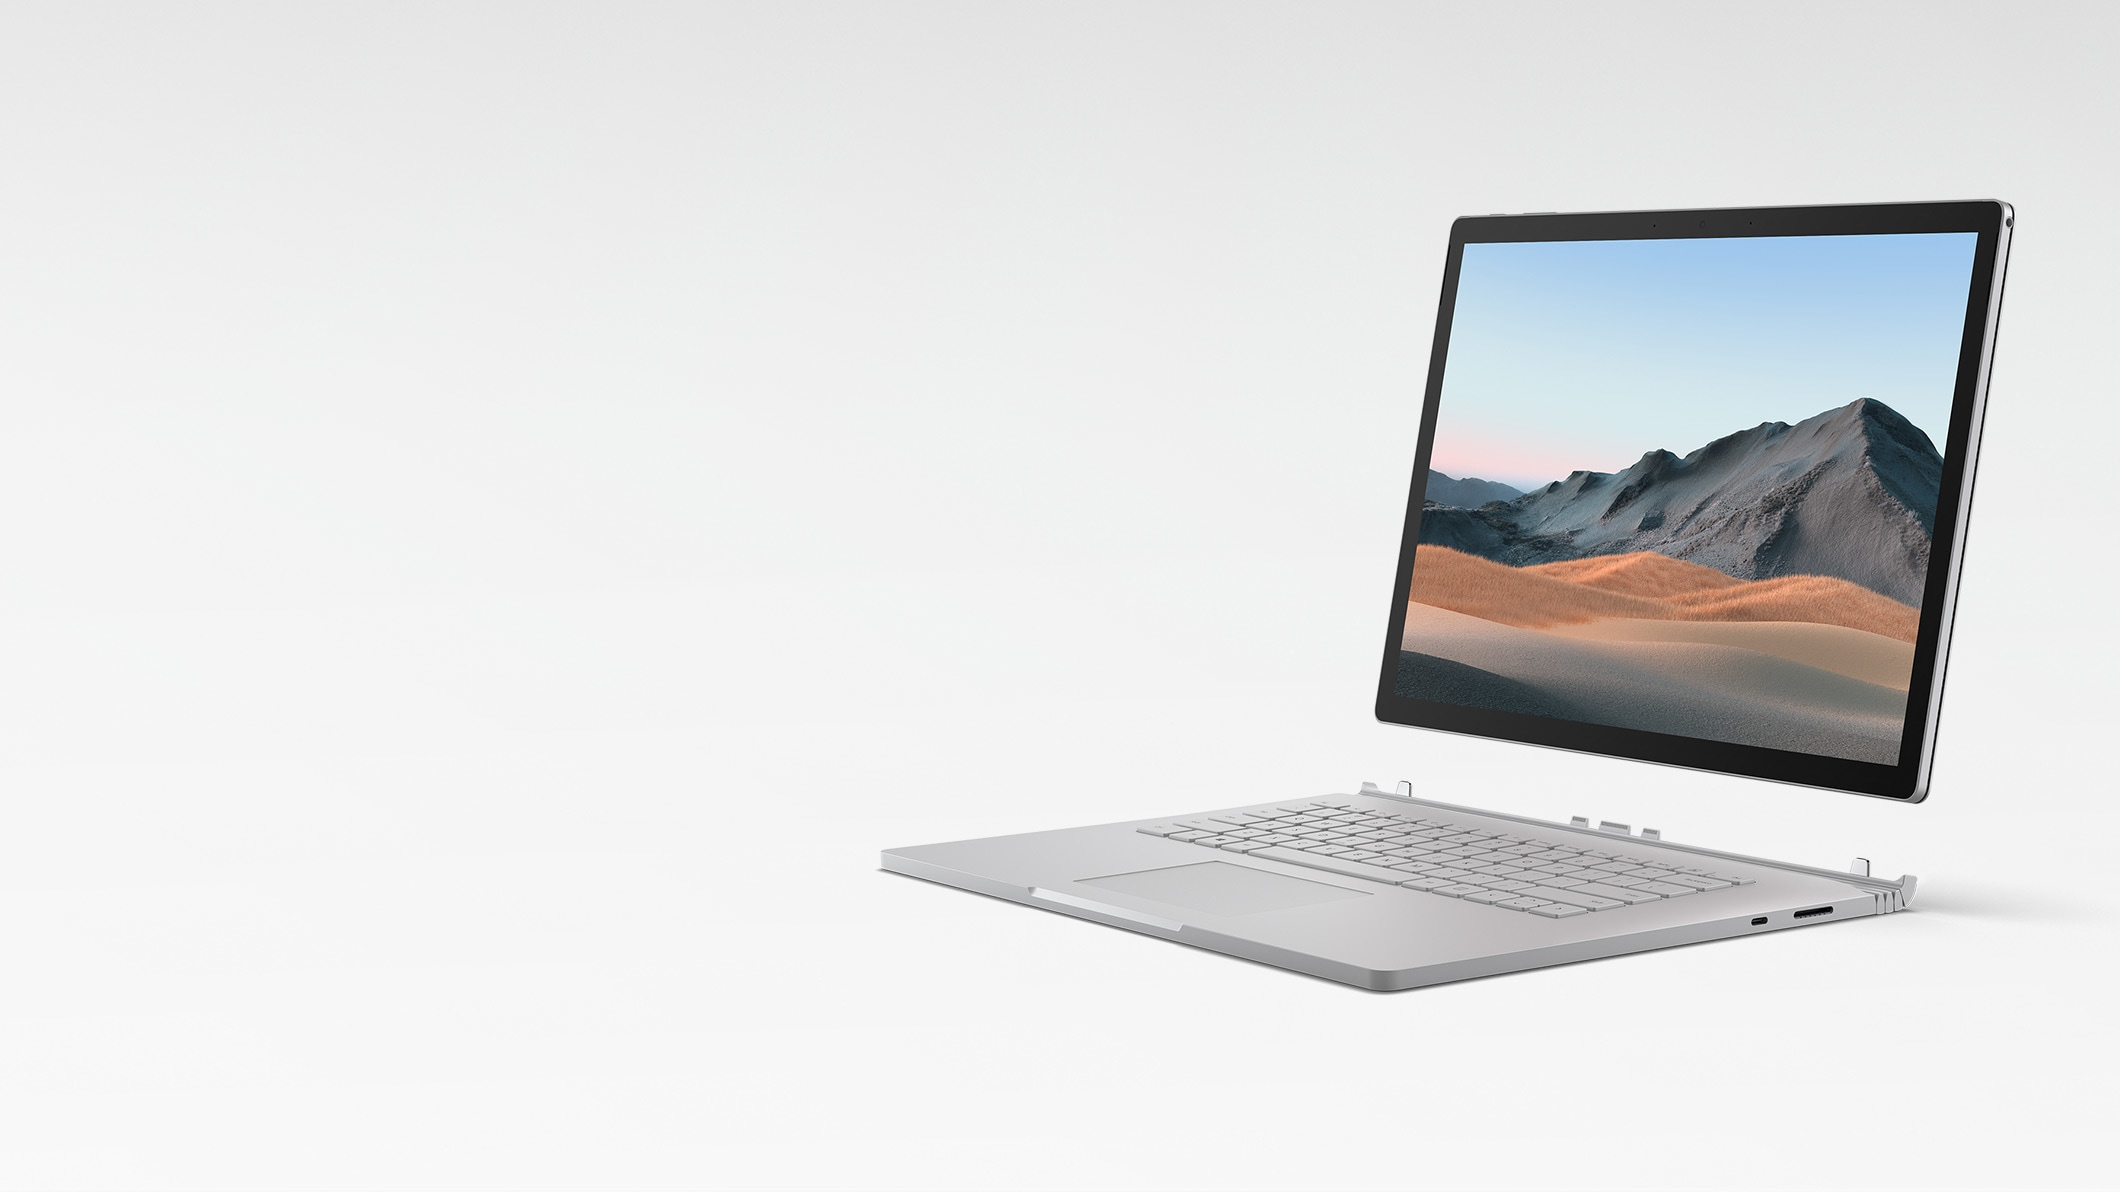 Surface Book 3 in Laptop Mode with the display detached from the keyboard